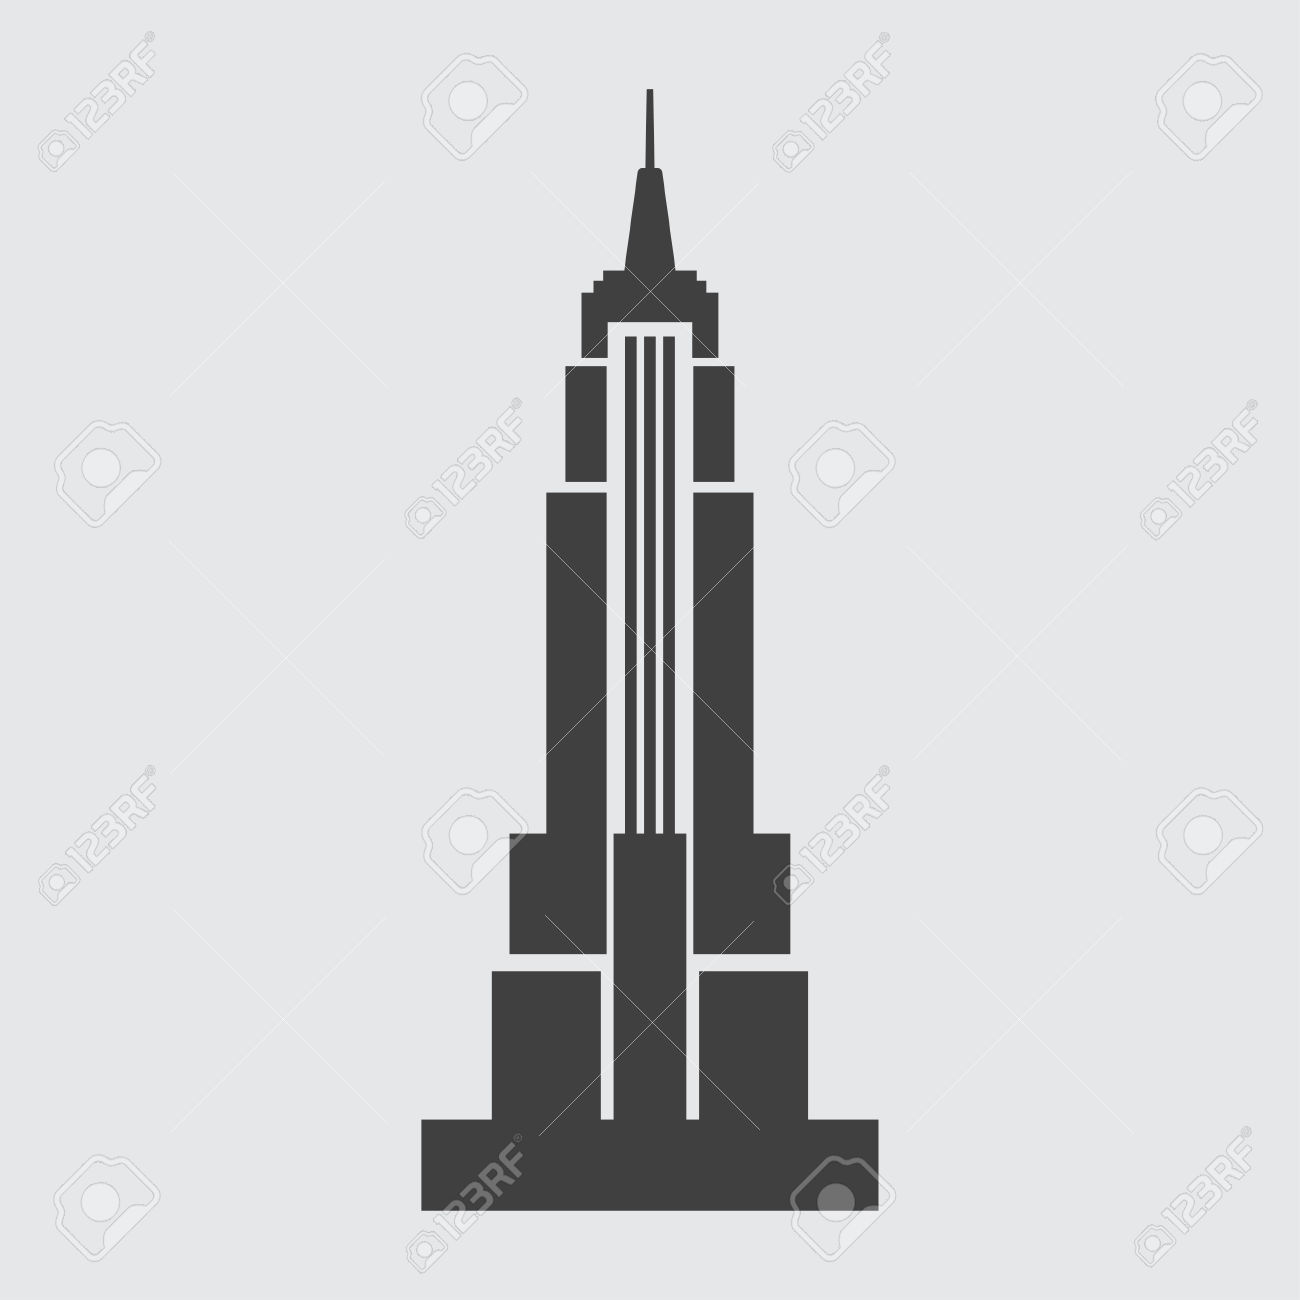 Empire clipart new york building Clipart Download #5 clipart drawings